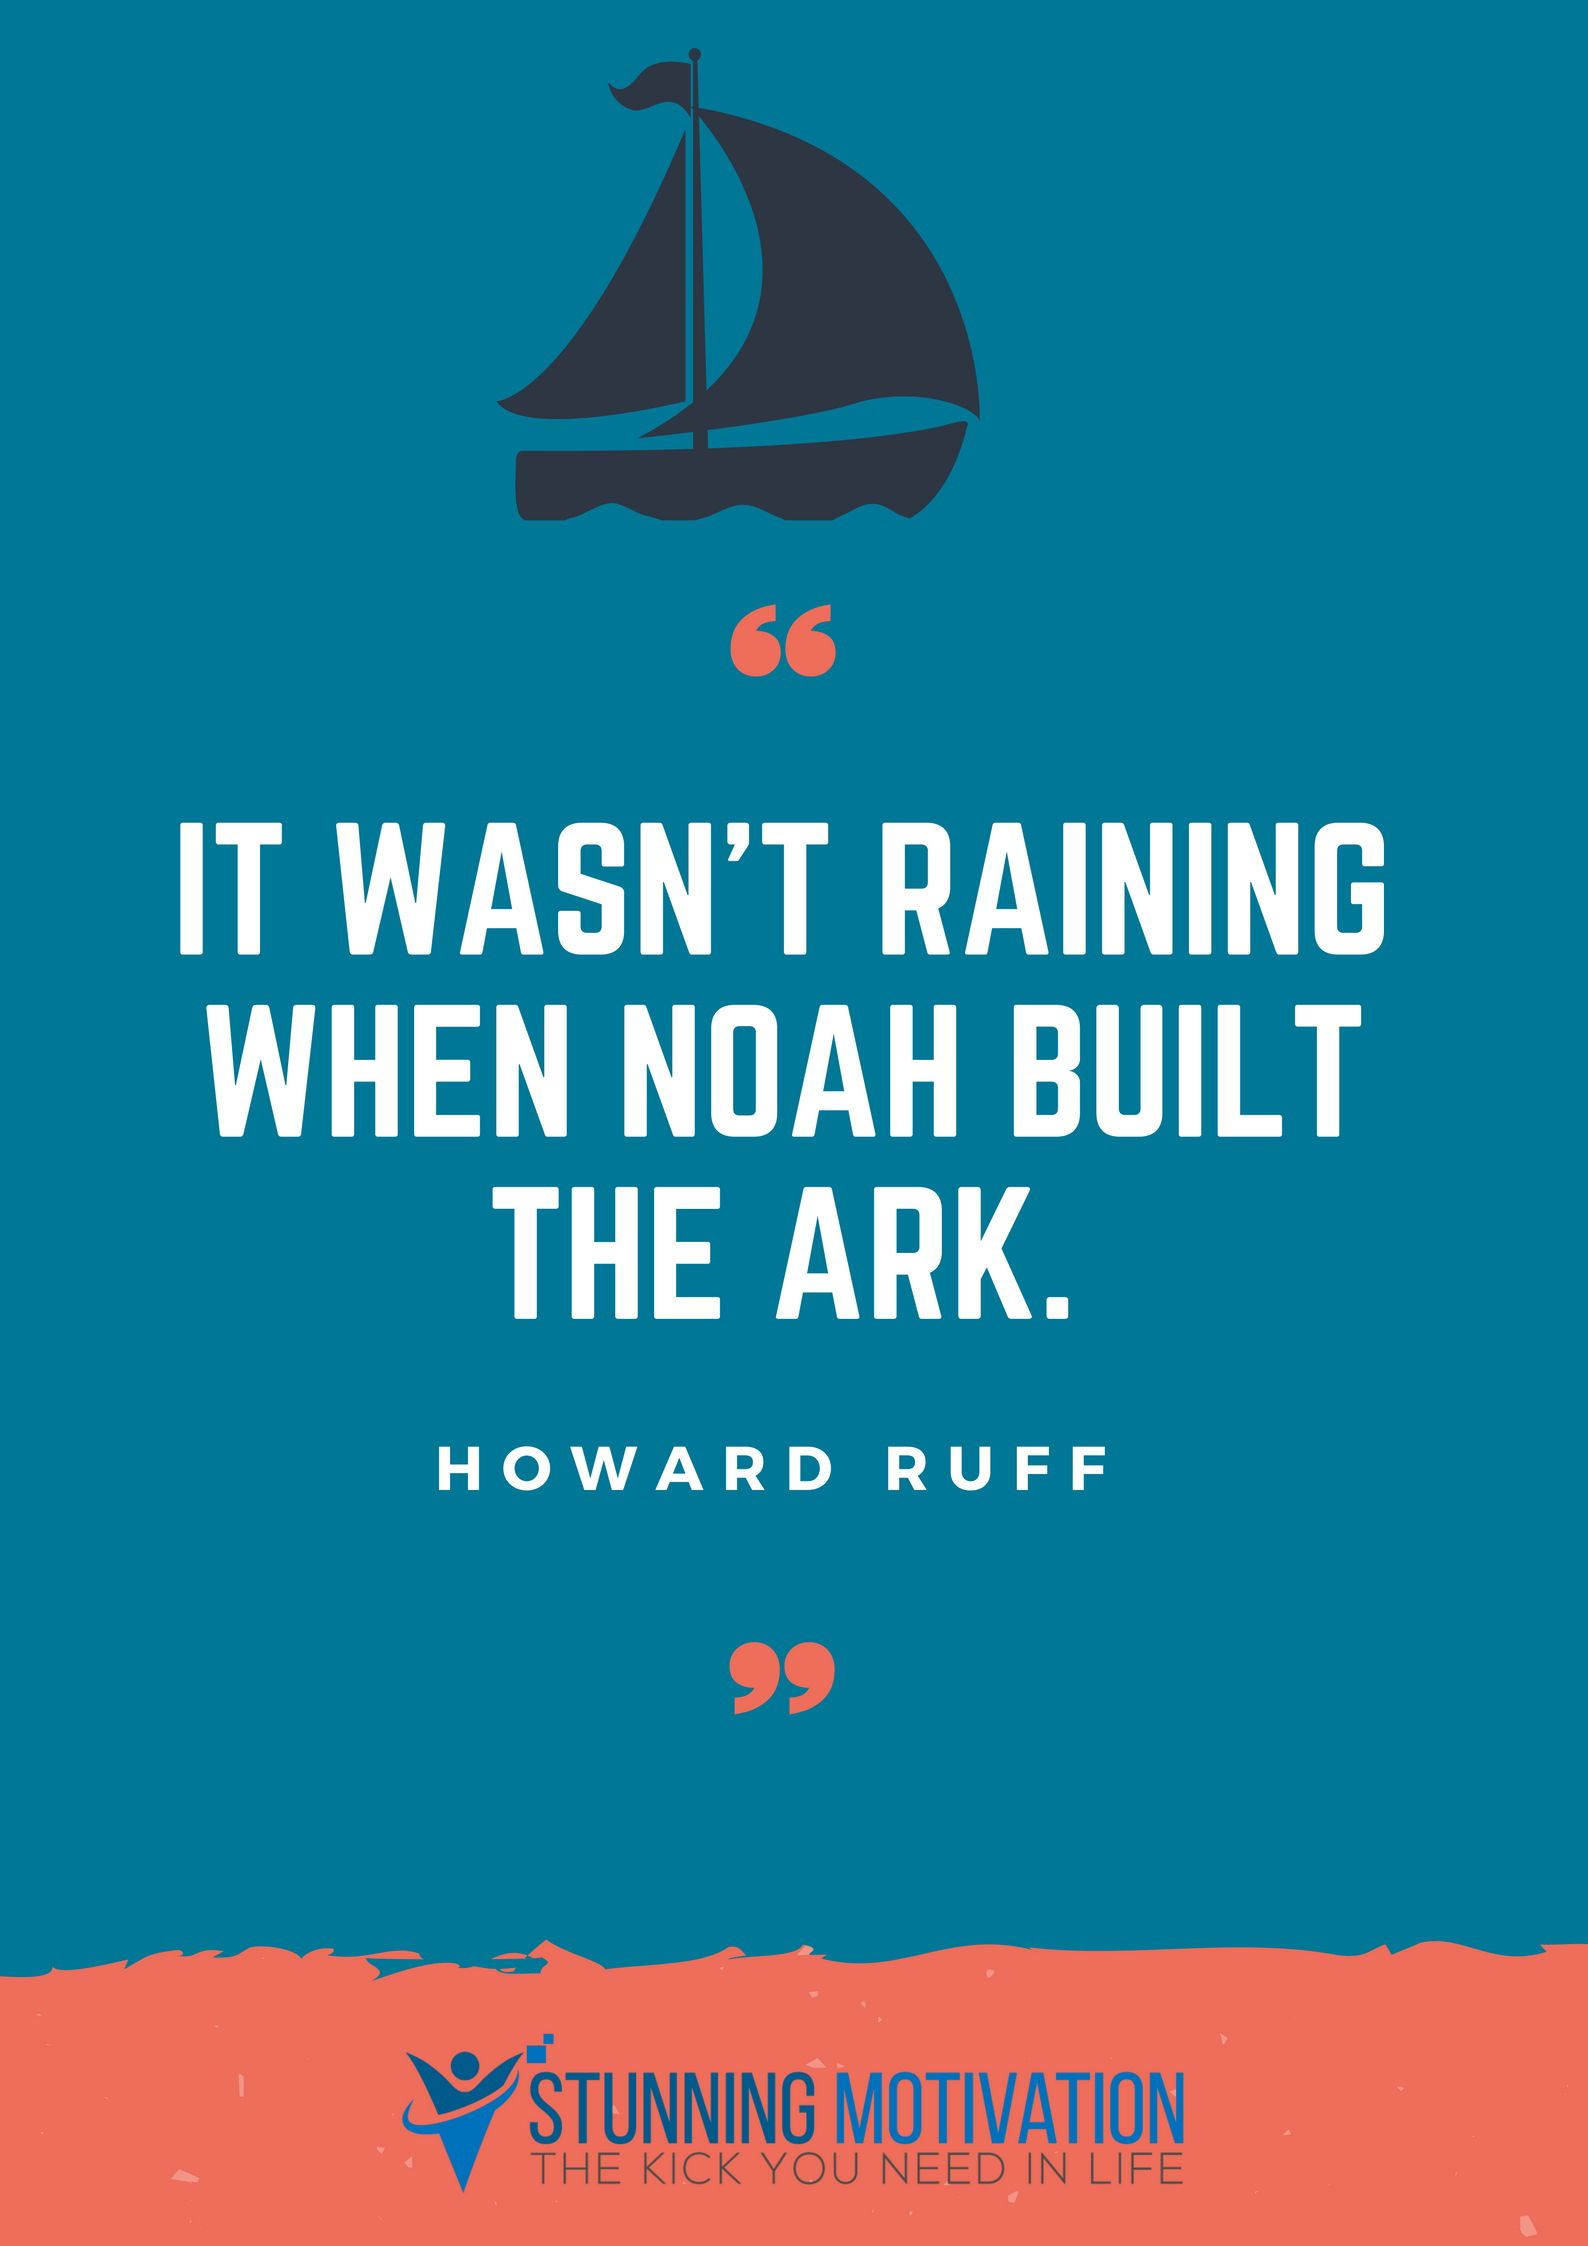 You Have To Always Get Ready And Prepare For What S Coming Build The Ark Like Noah Did Before The R Inspirational Quotes Leadership Quotes Motivational Quotes